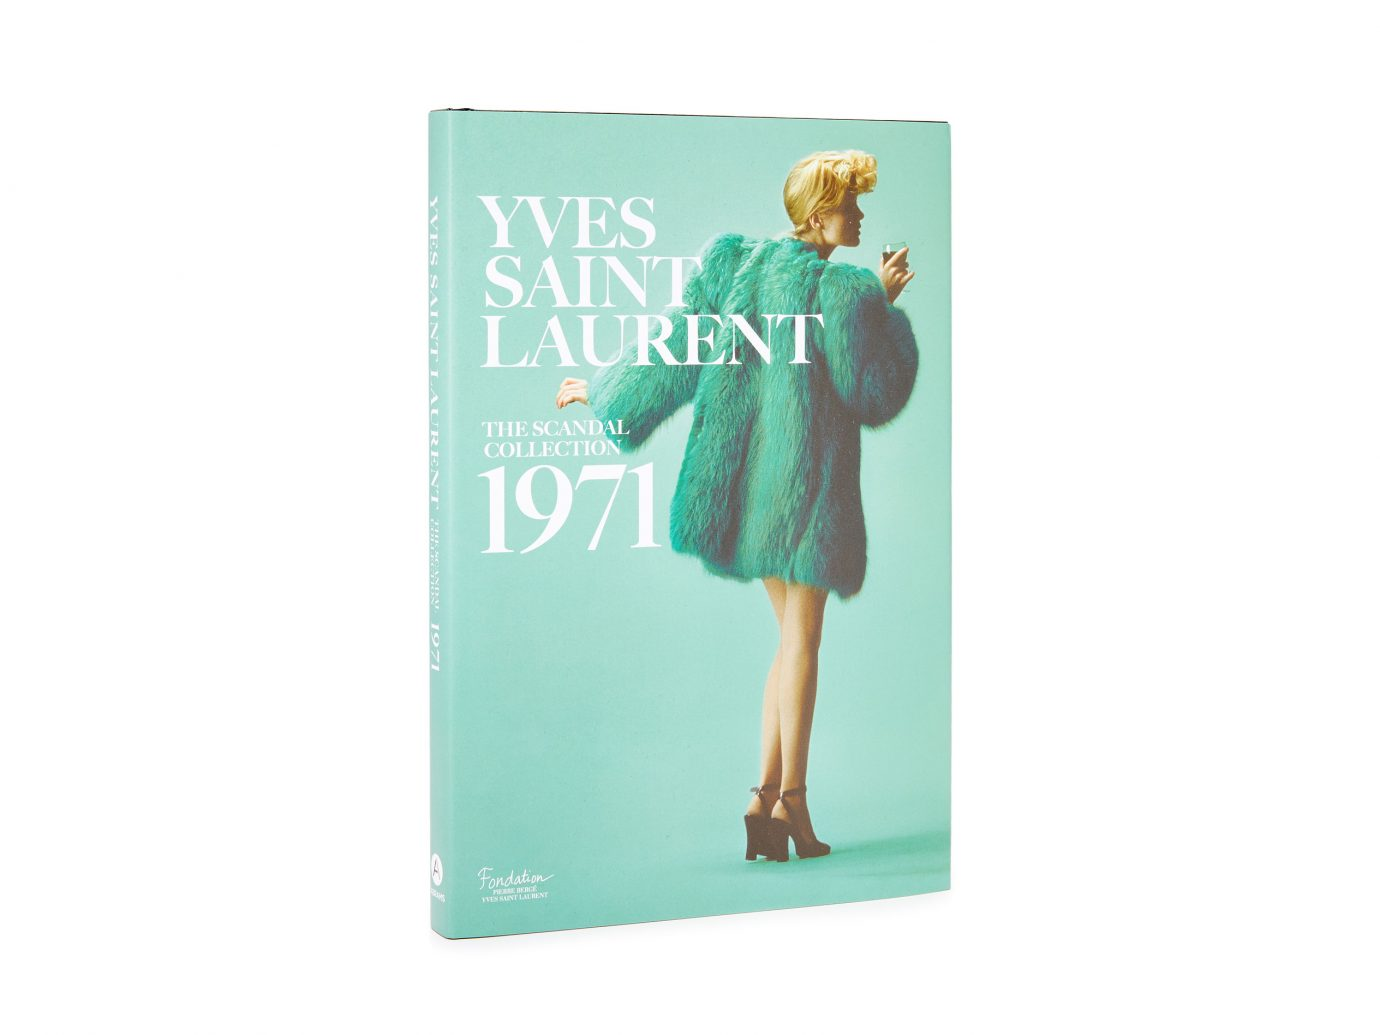 Yves Saint Laurent: The Scandal Collection Book